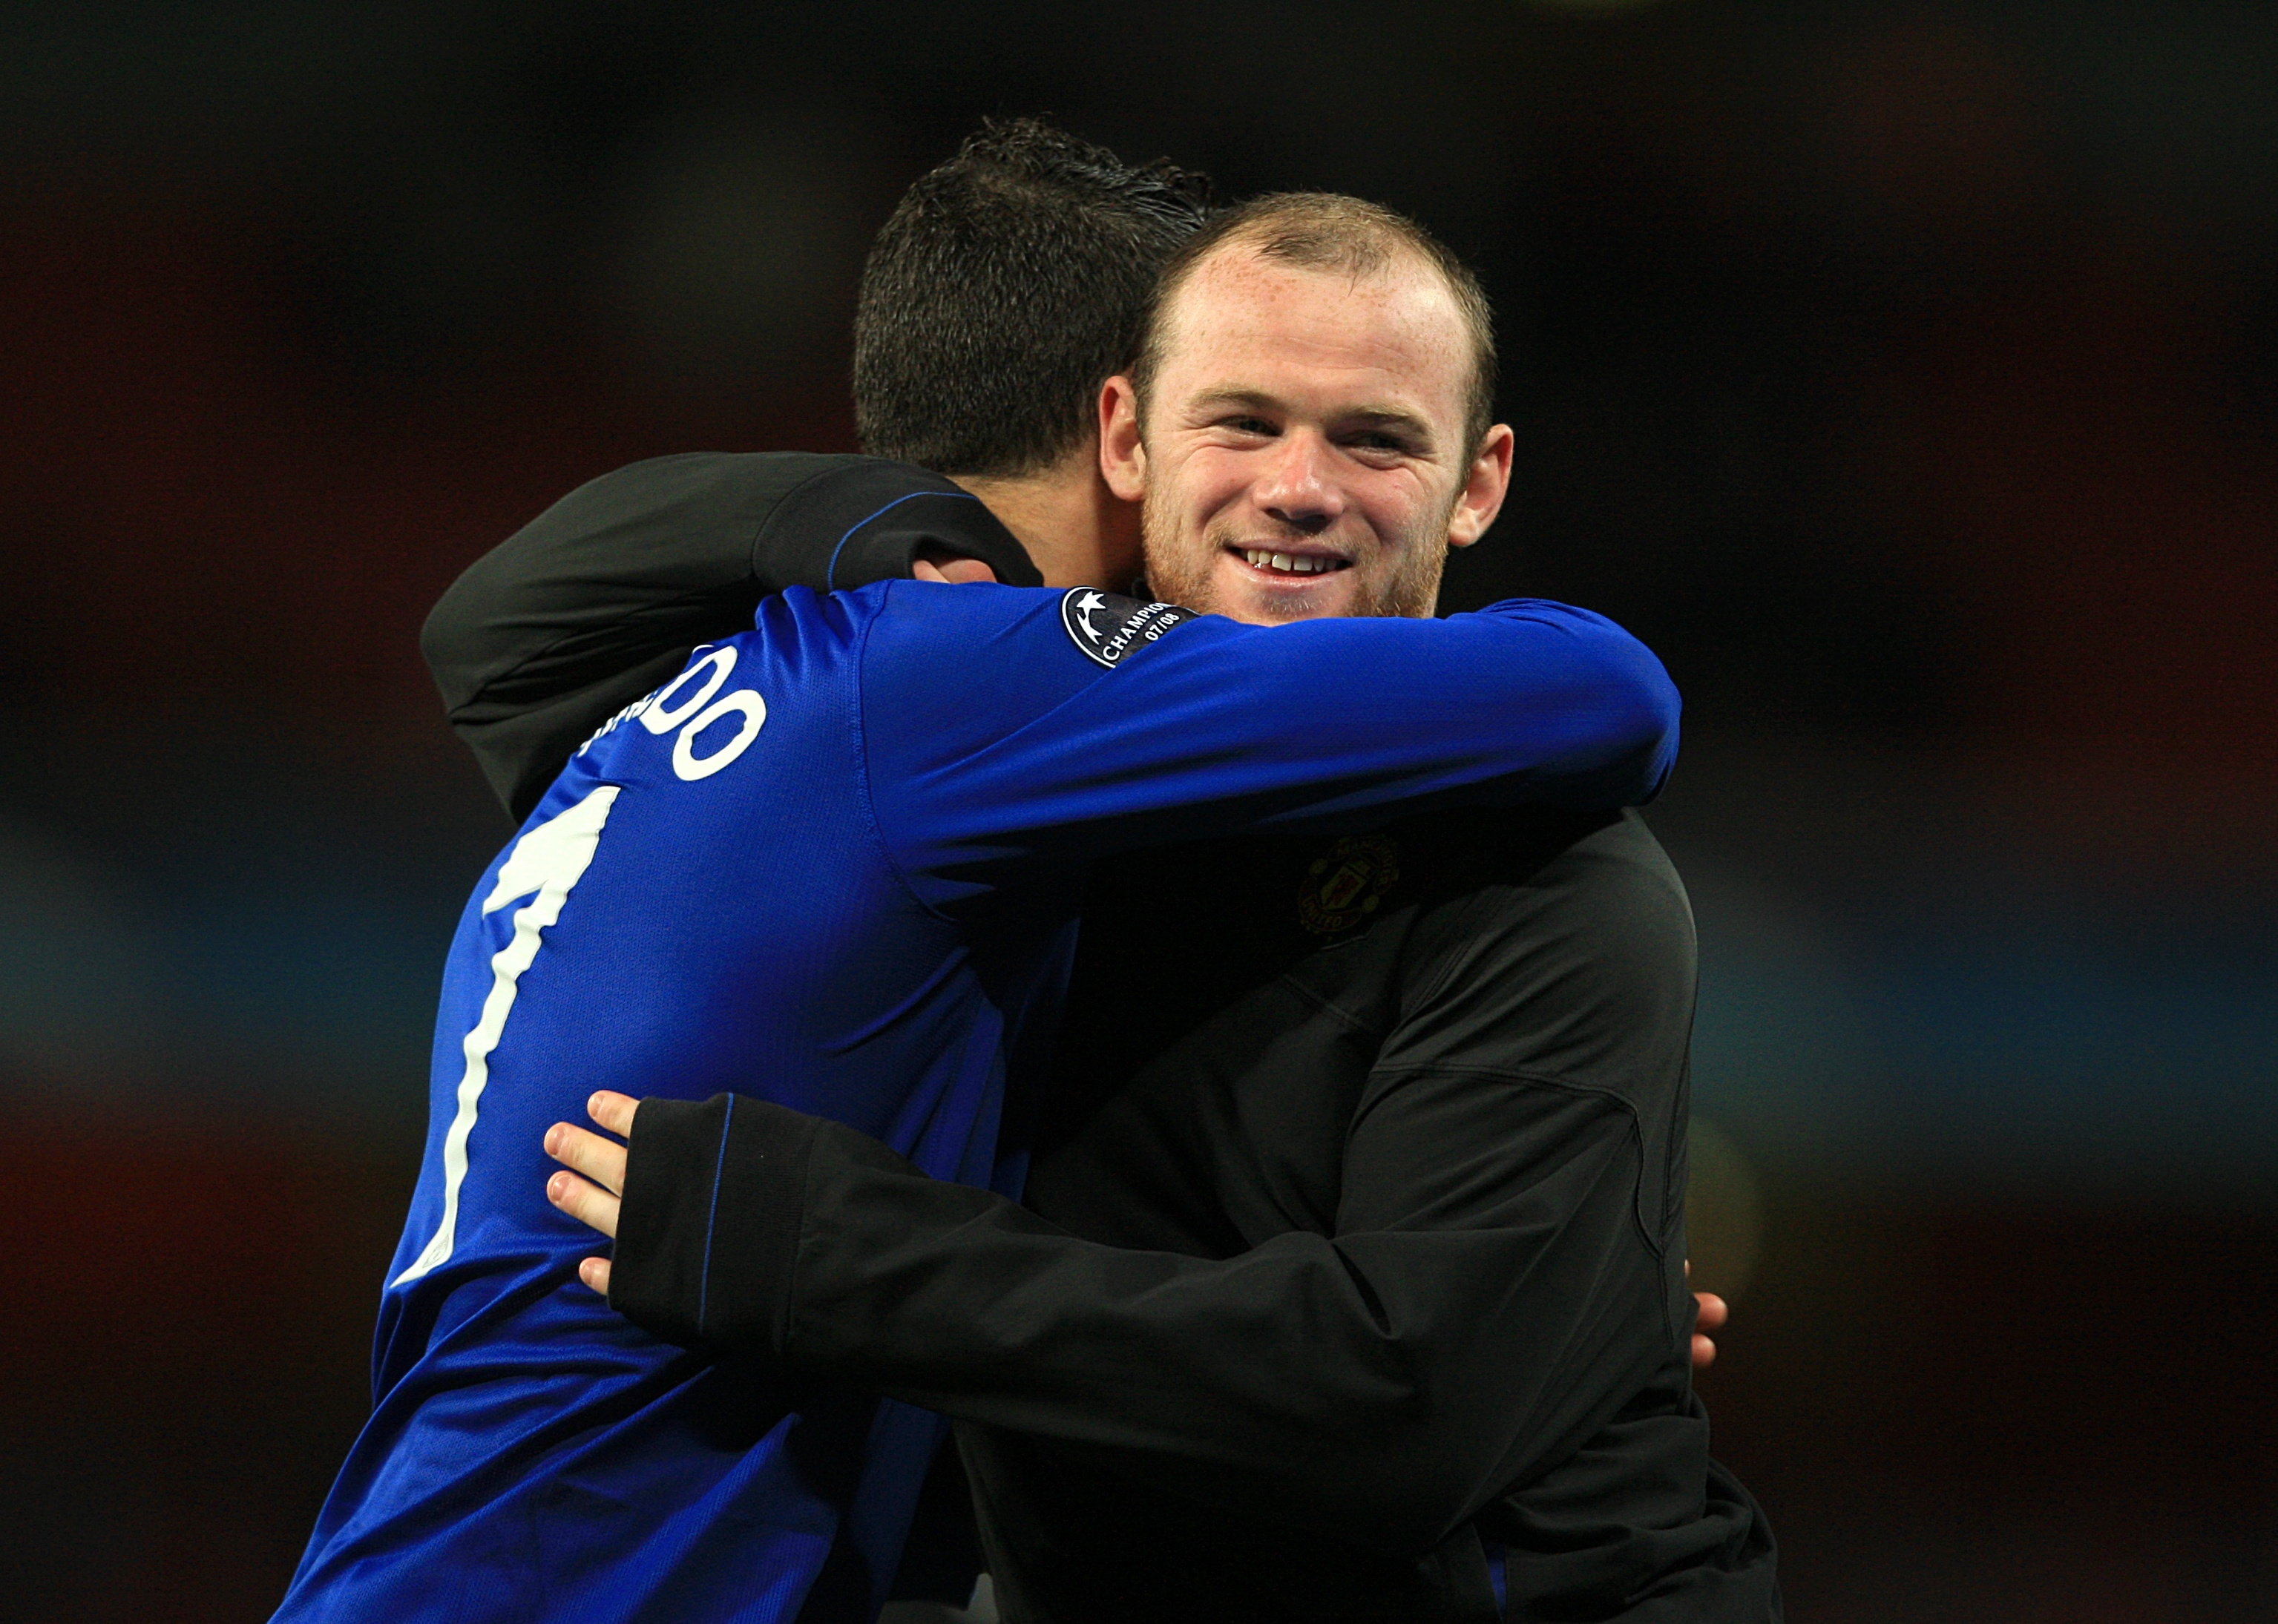 Rooney and Ronaldo embrace. Image PA Images